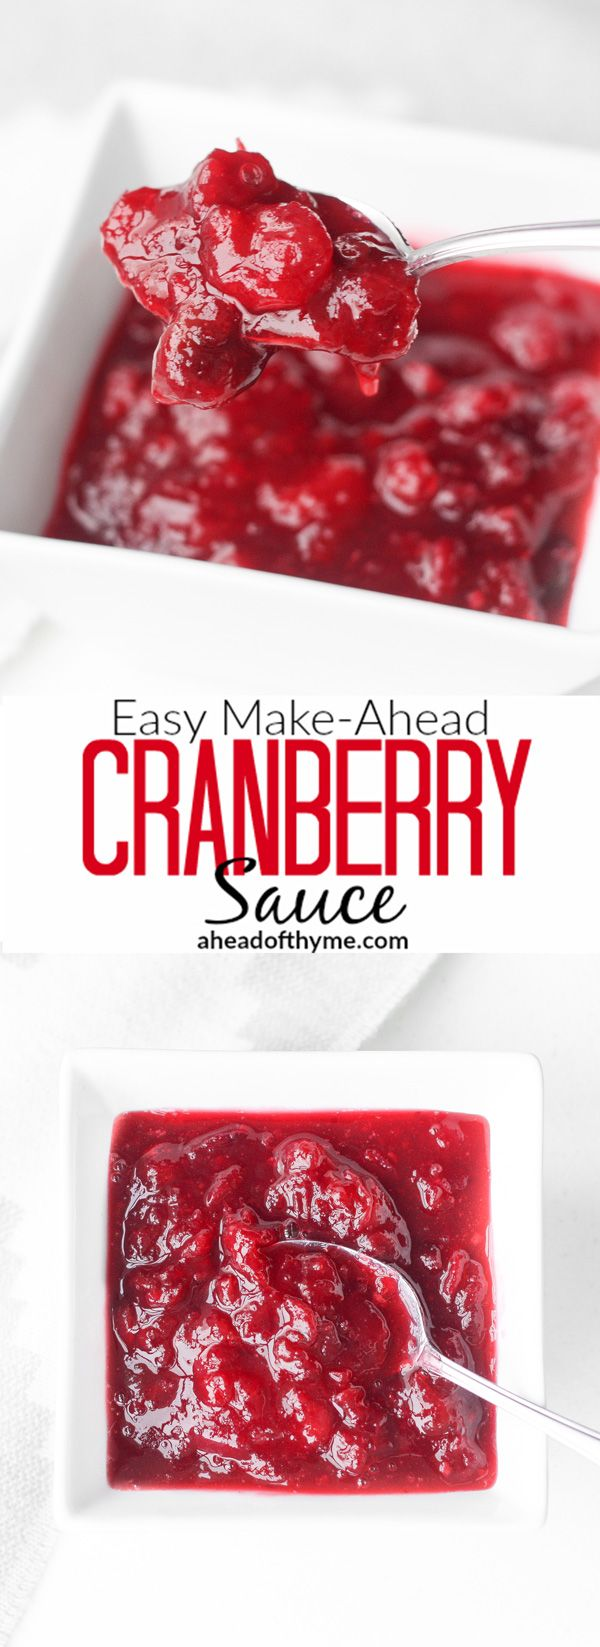 Easy Make-Ahead Cranberry Sauce: Take the stress out of the holidays and prepare easy make-ahead cranberry sauce days before the big holiday dinner! | aheadofthyme.com